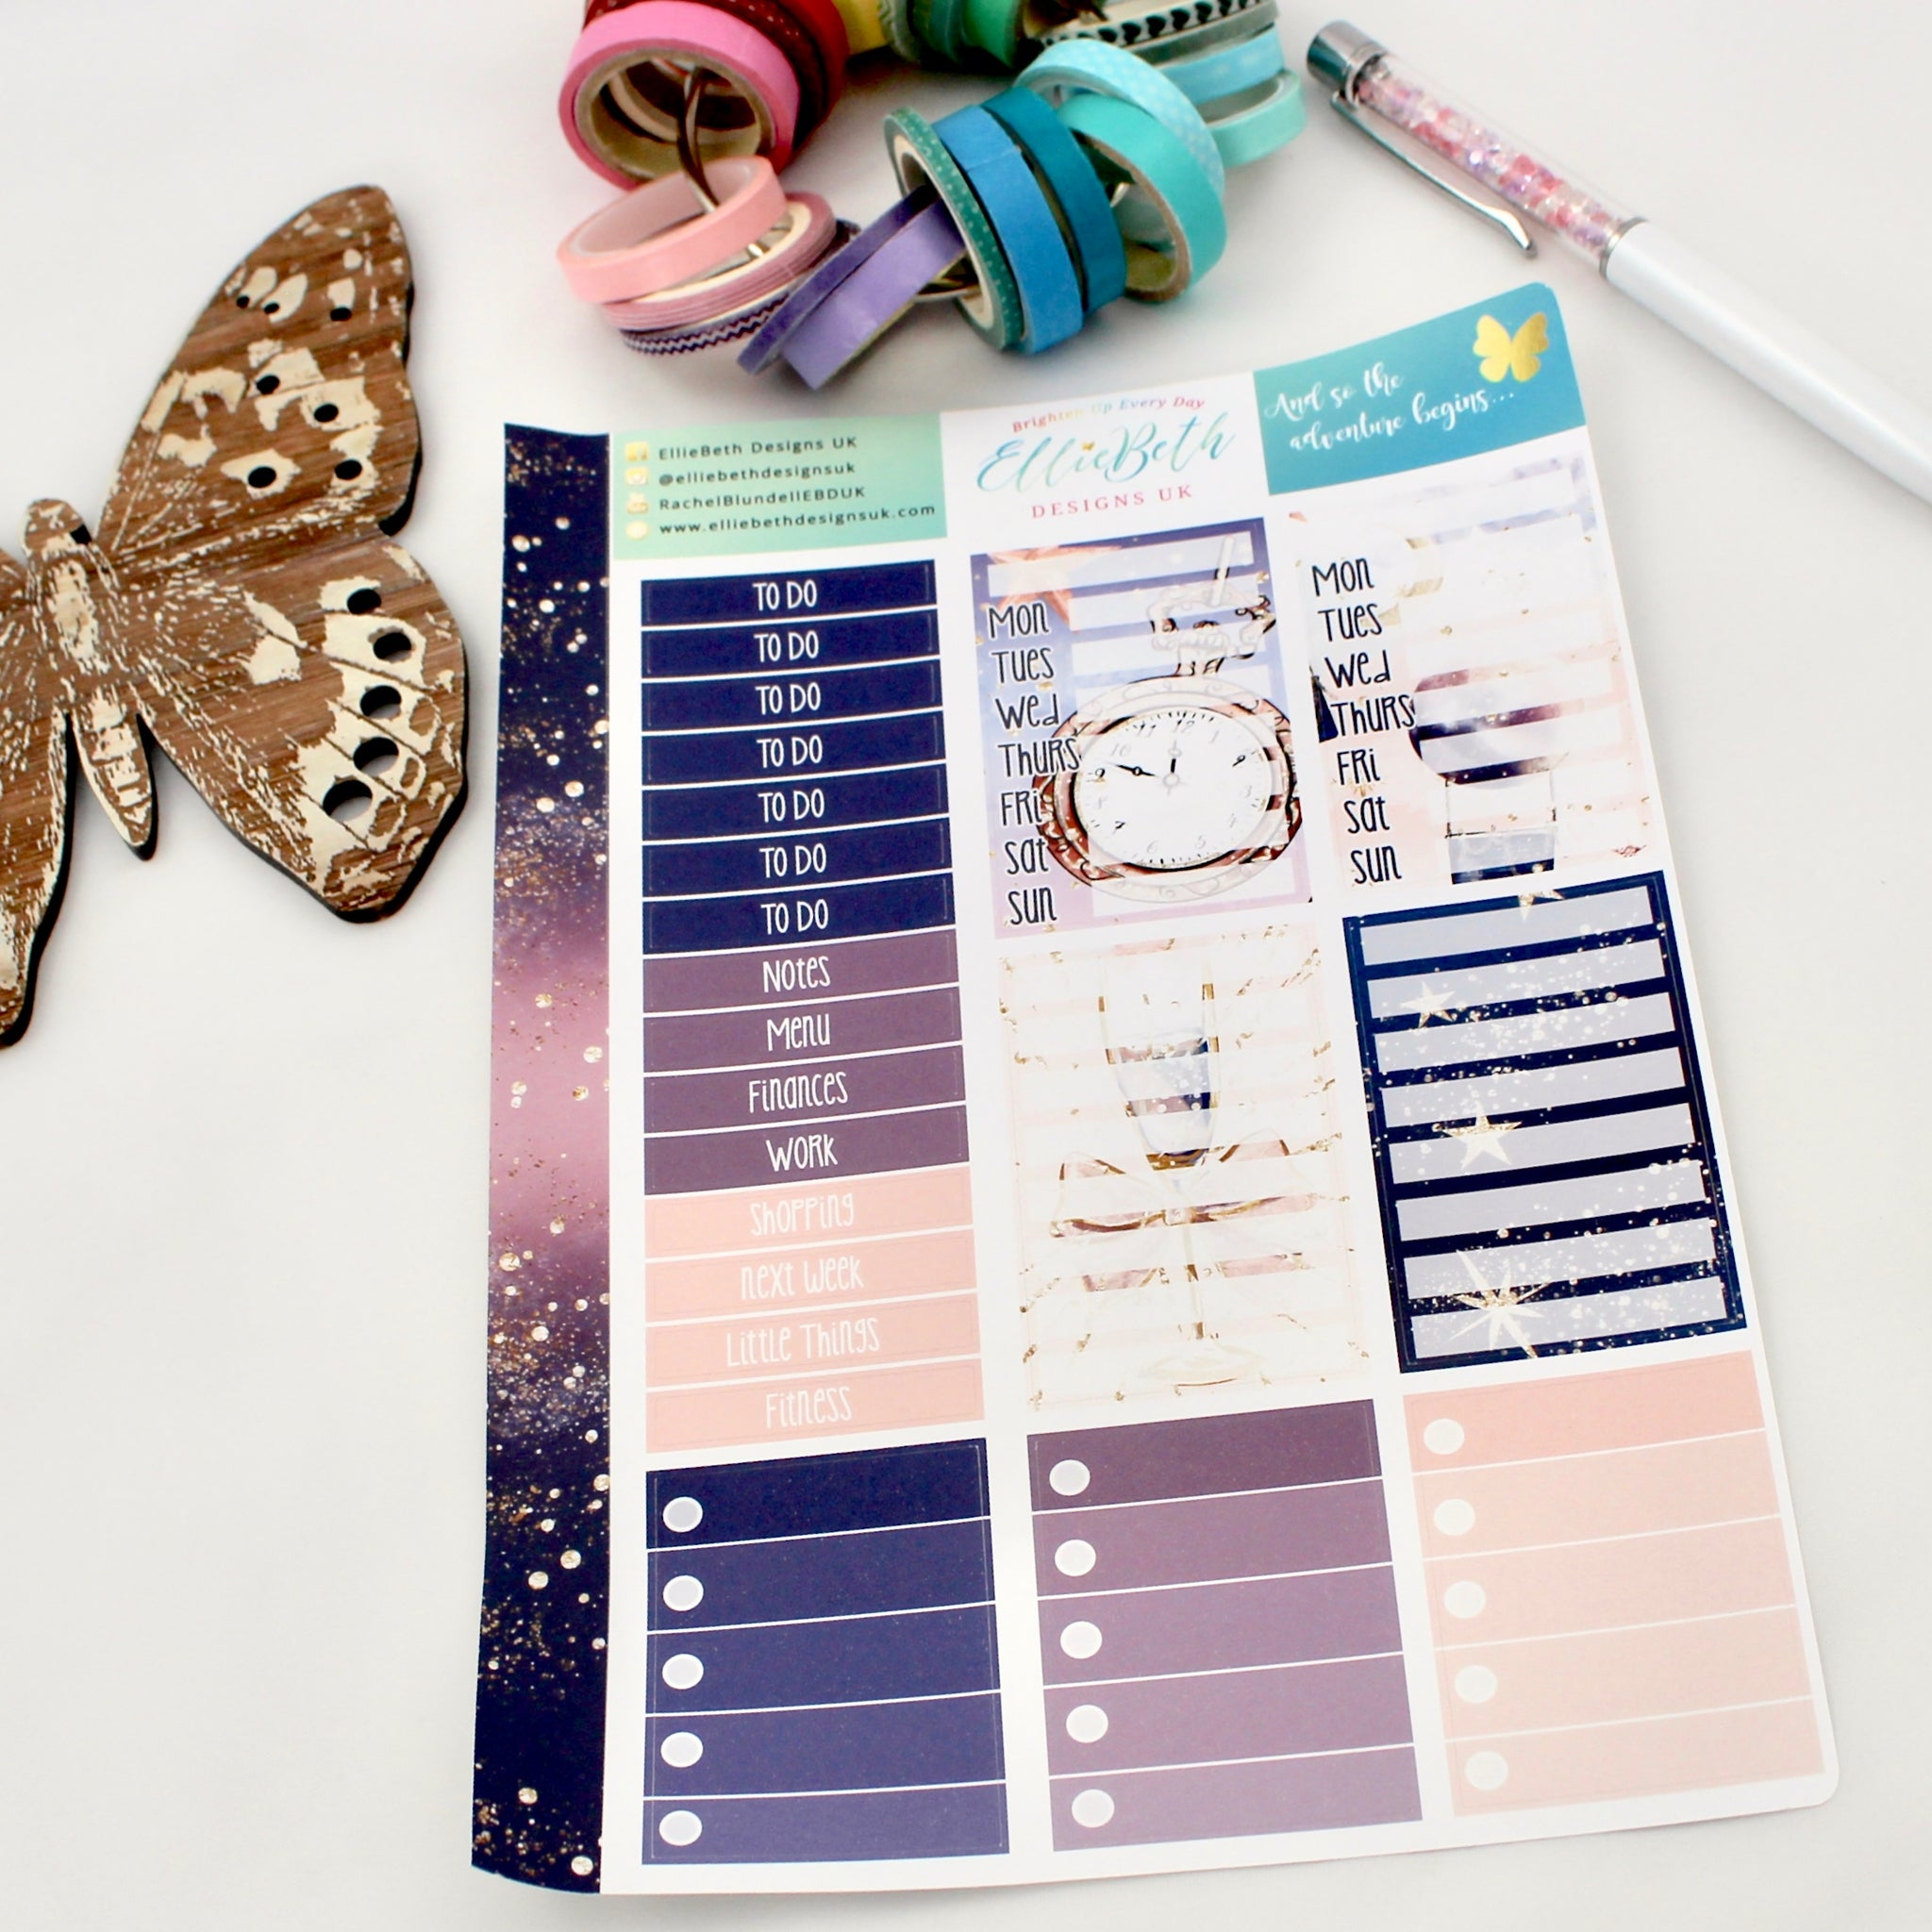 'And so the Adventure Begins' - Make a List Sheet -  A5 binder ready planner stickers